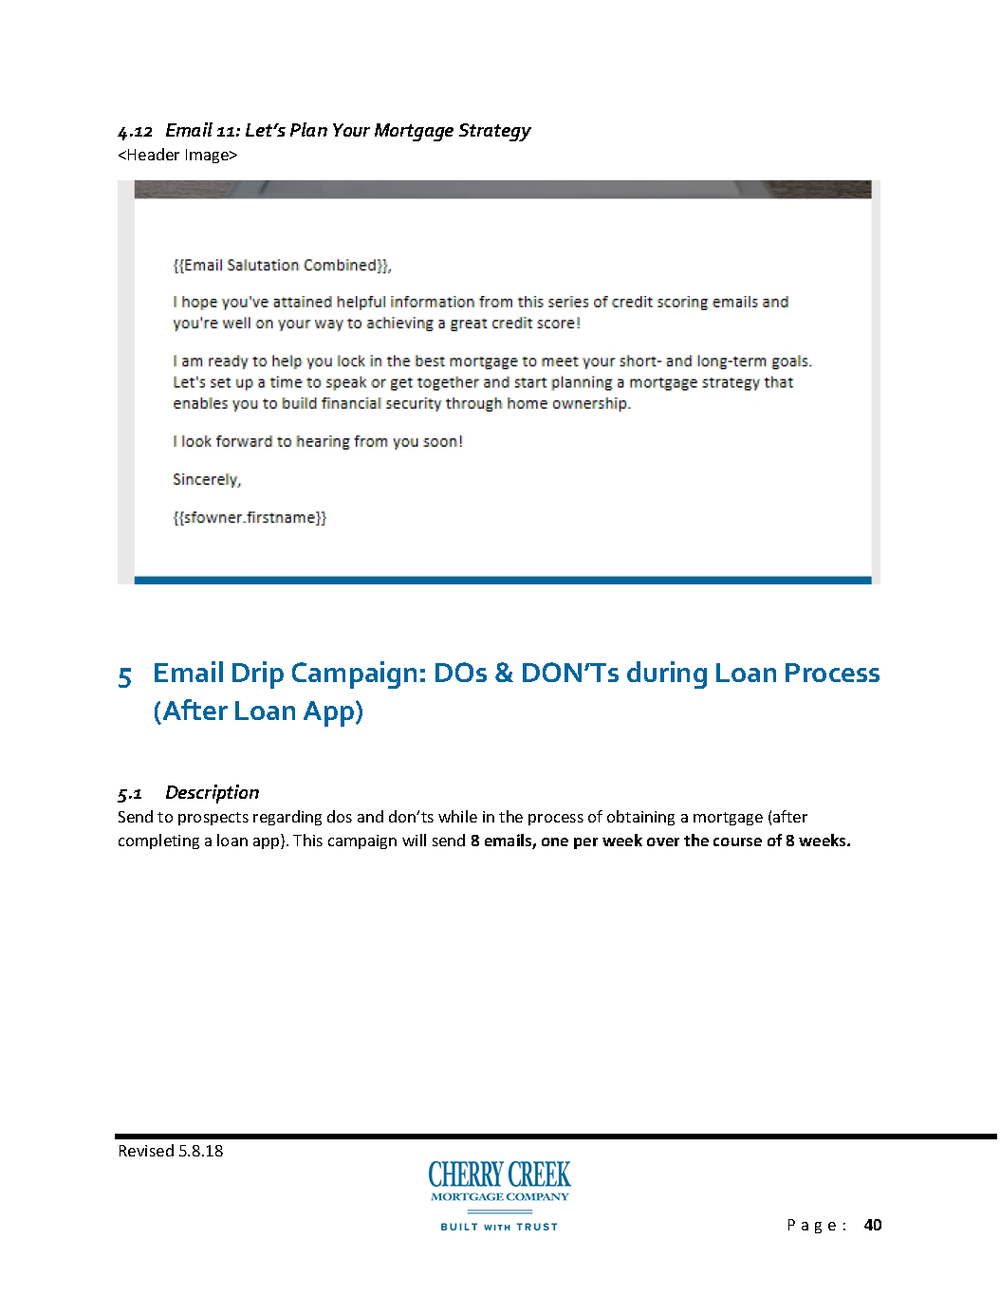 Jungo_Email_Drip_Campaigns-Consumers_D1O6plI_Page_040.png